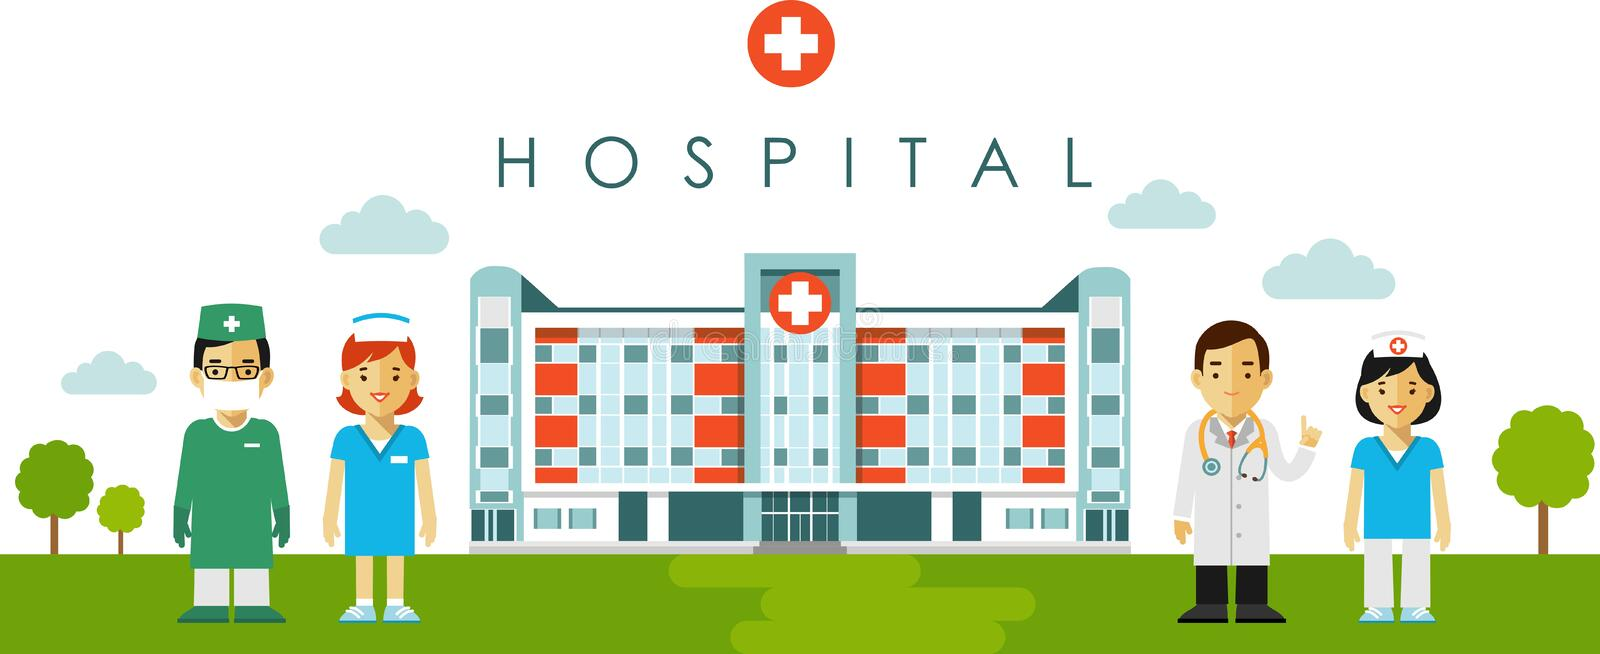 Medical concept with hospital building and doctor in flat style stock illustration